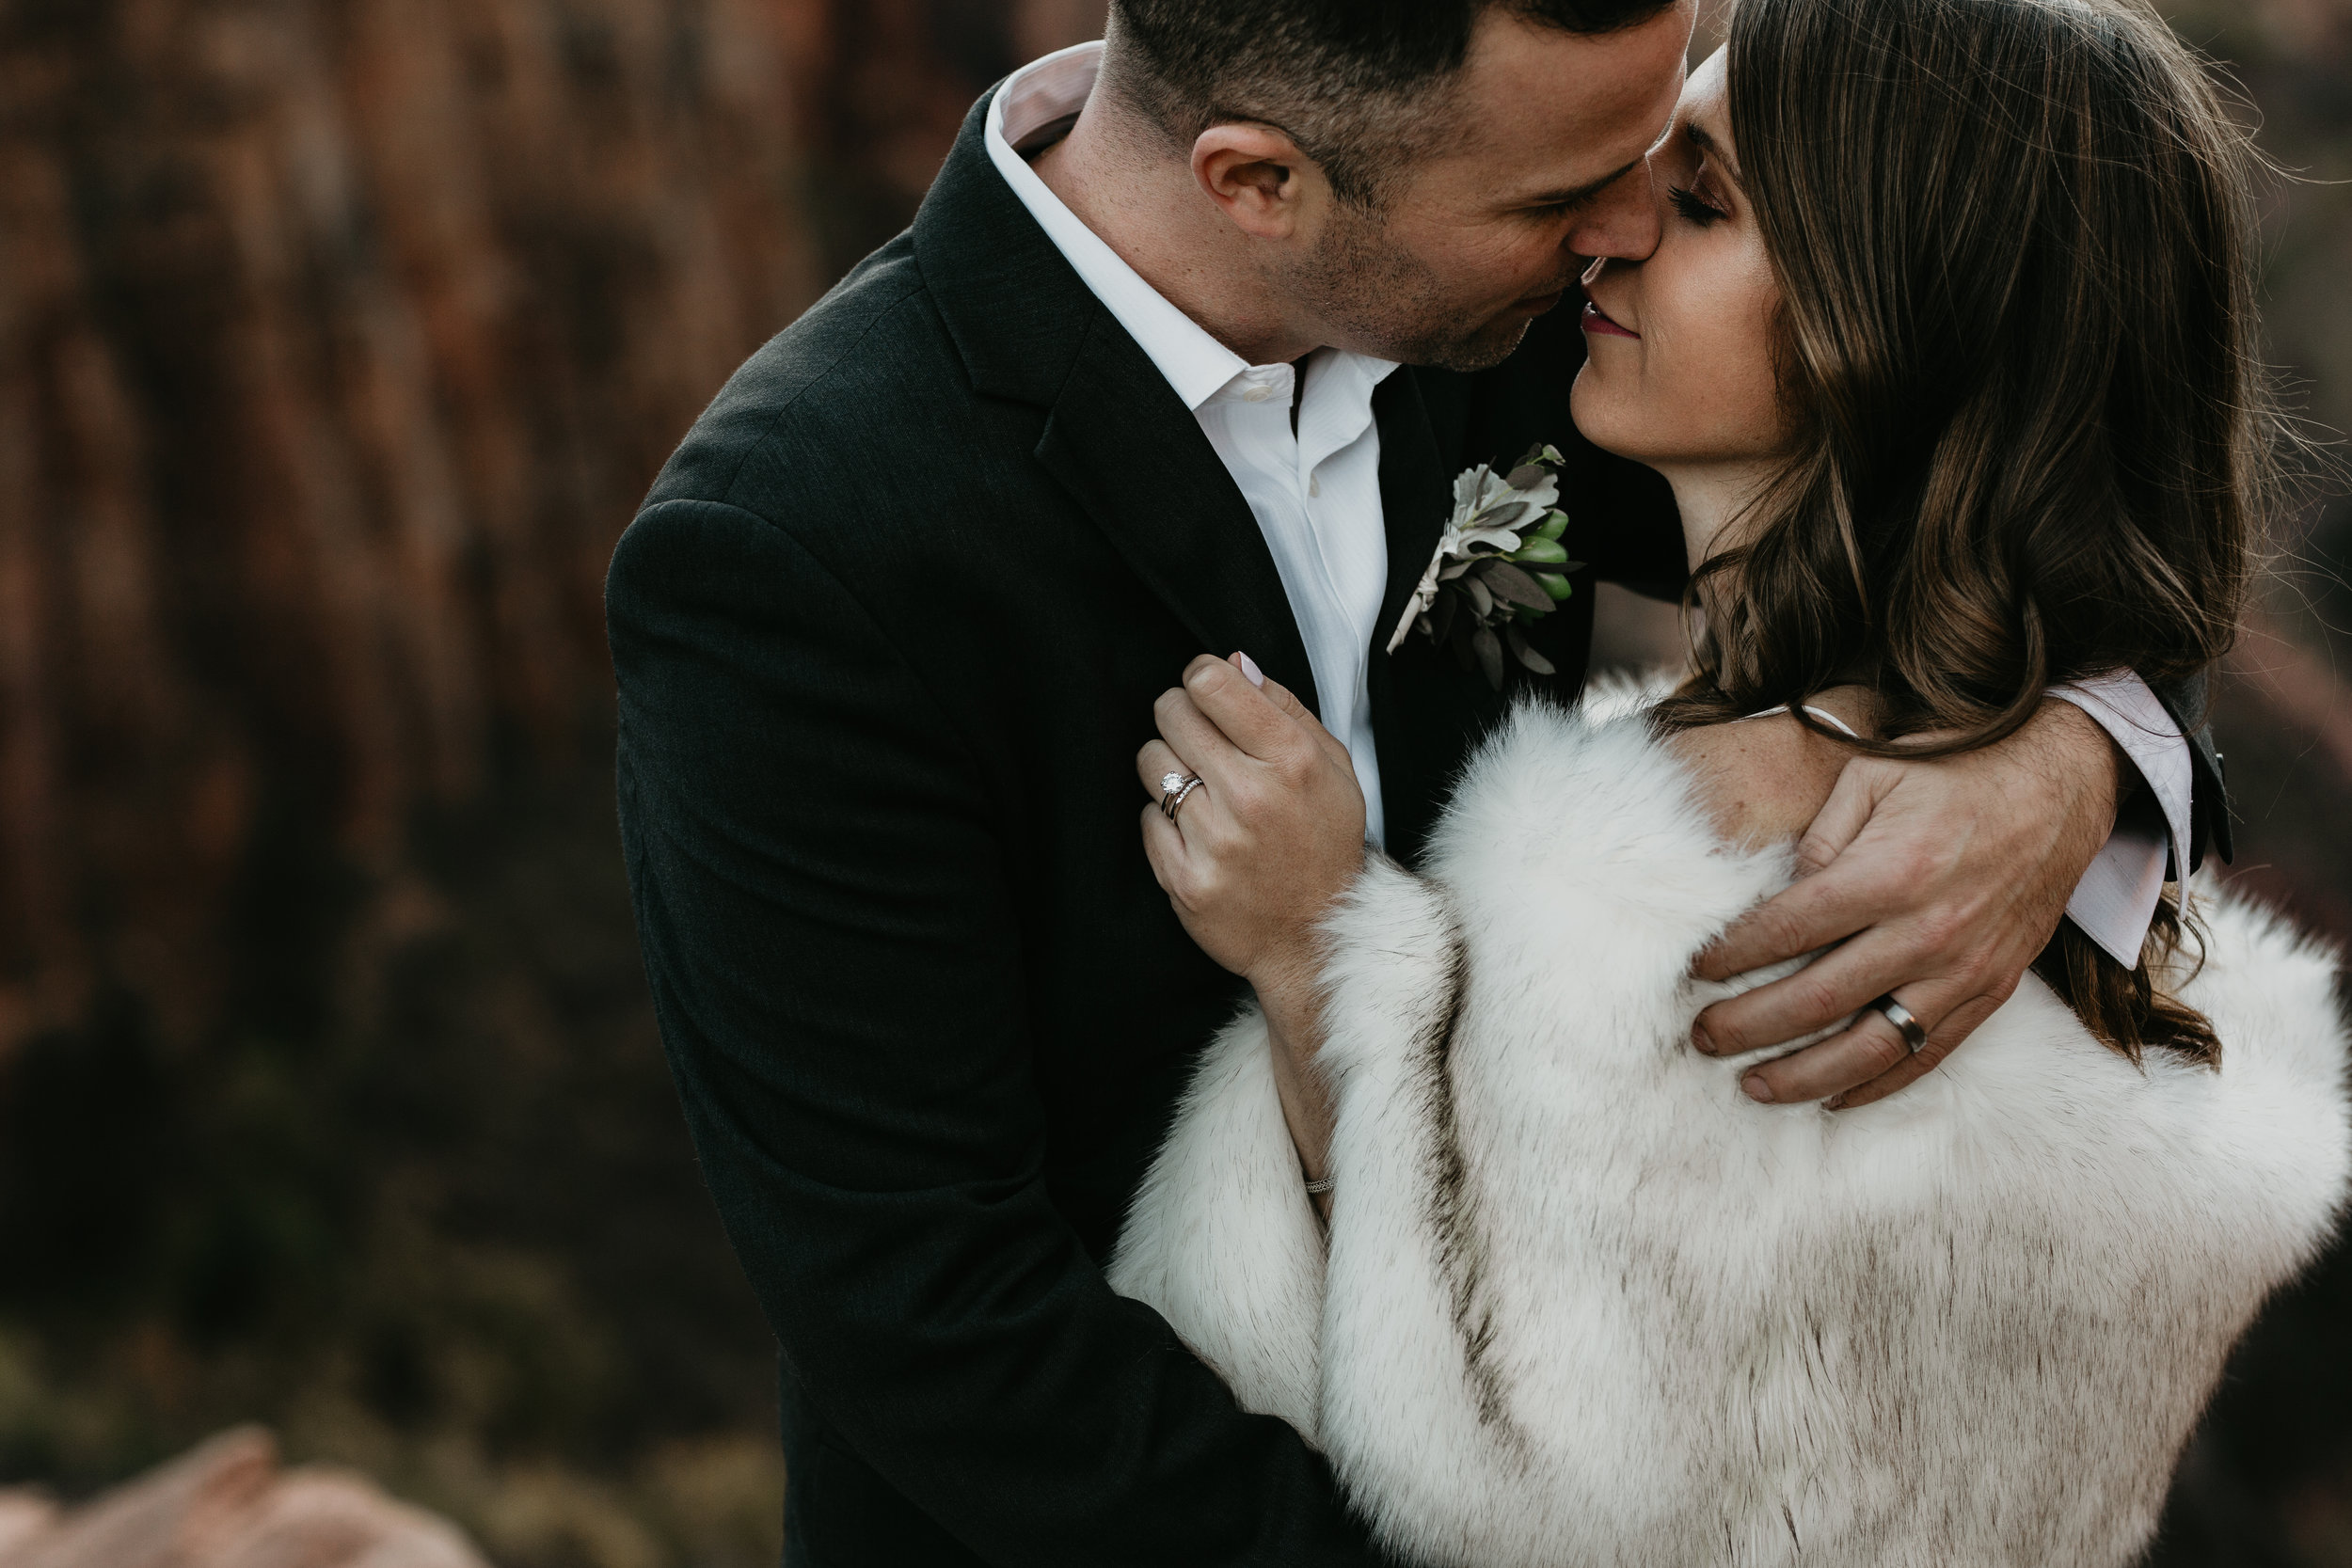 nicole-daacke-photography-zion-national-park-elopement-photographer-canyon-overlook-trail-elope-hiking-adventure-wedding-photos-fall-utah-red-rock-canyon-stgeorge-eloping-photographer-71.jpg